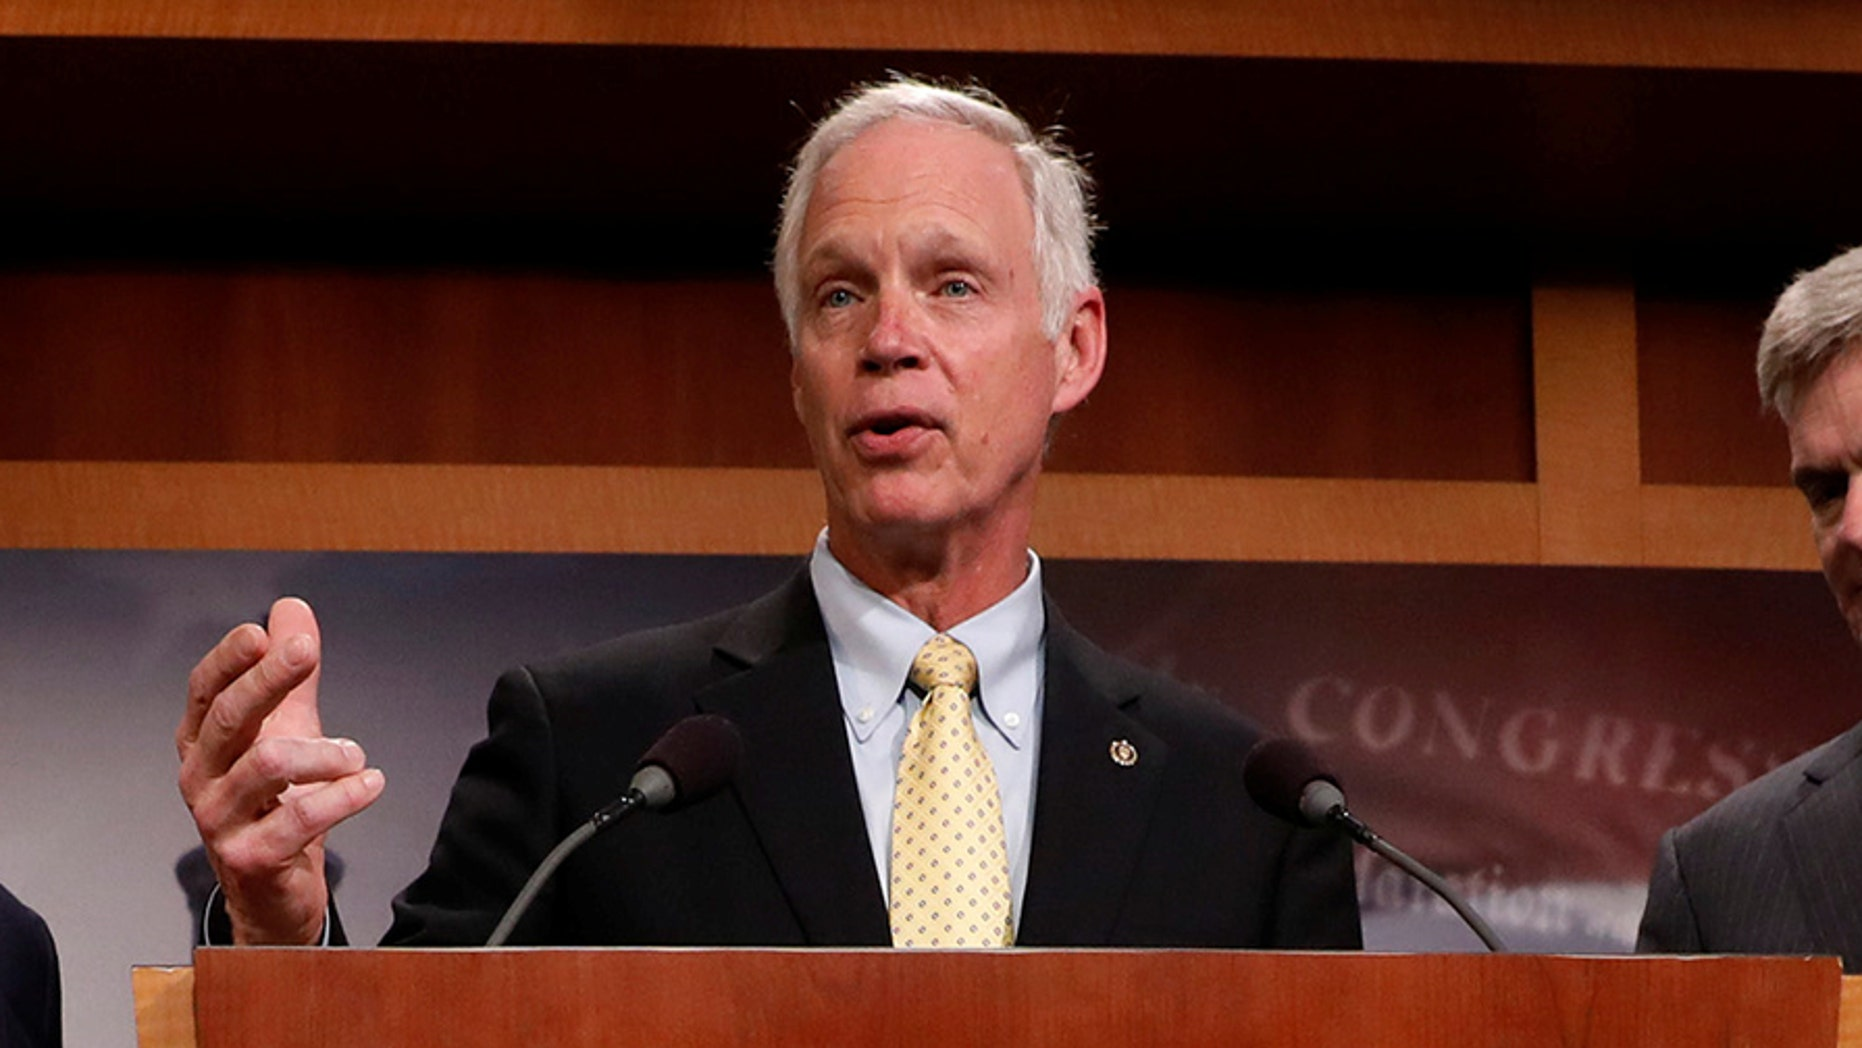 Sen. Ron Johnson, R-Wis., shown on Capitol Hill in this July 27, 2017 photo, is demanding answers on what he calls an ObamaCare carve-out for Congress.